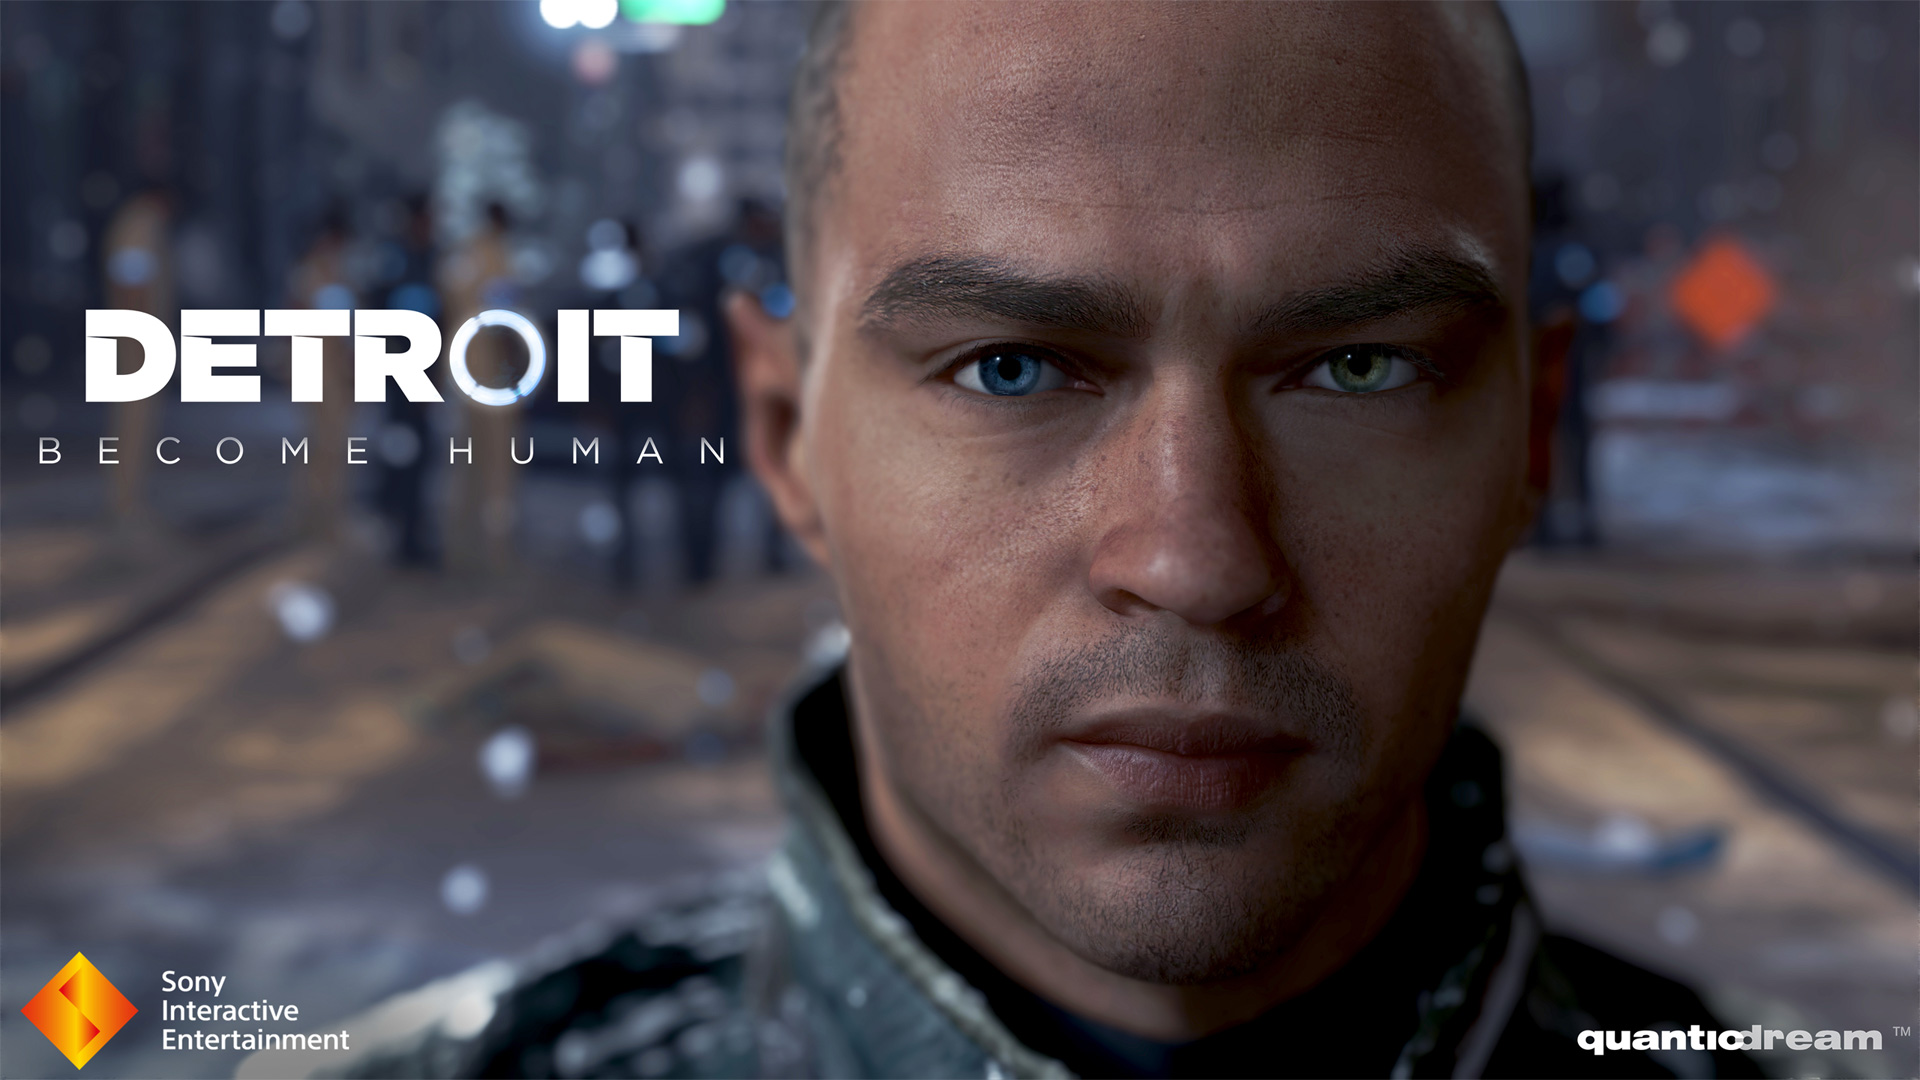 Android z gry Detroit: Become Human. Wallpaper from Detroit: Become Human